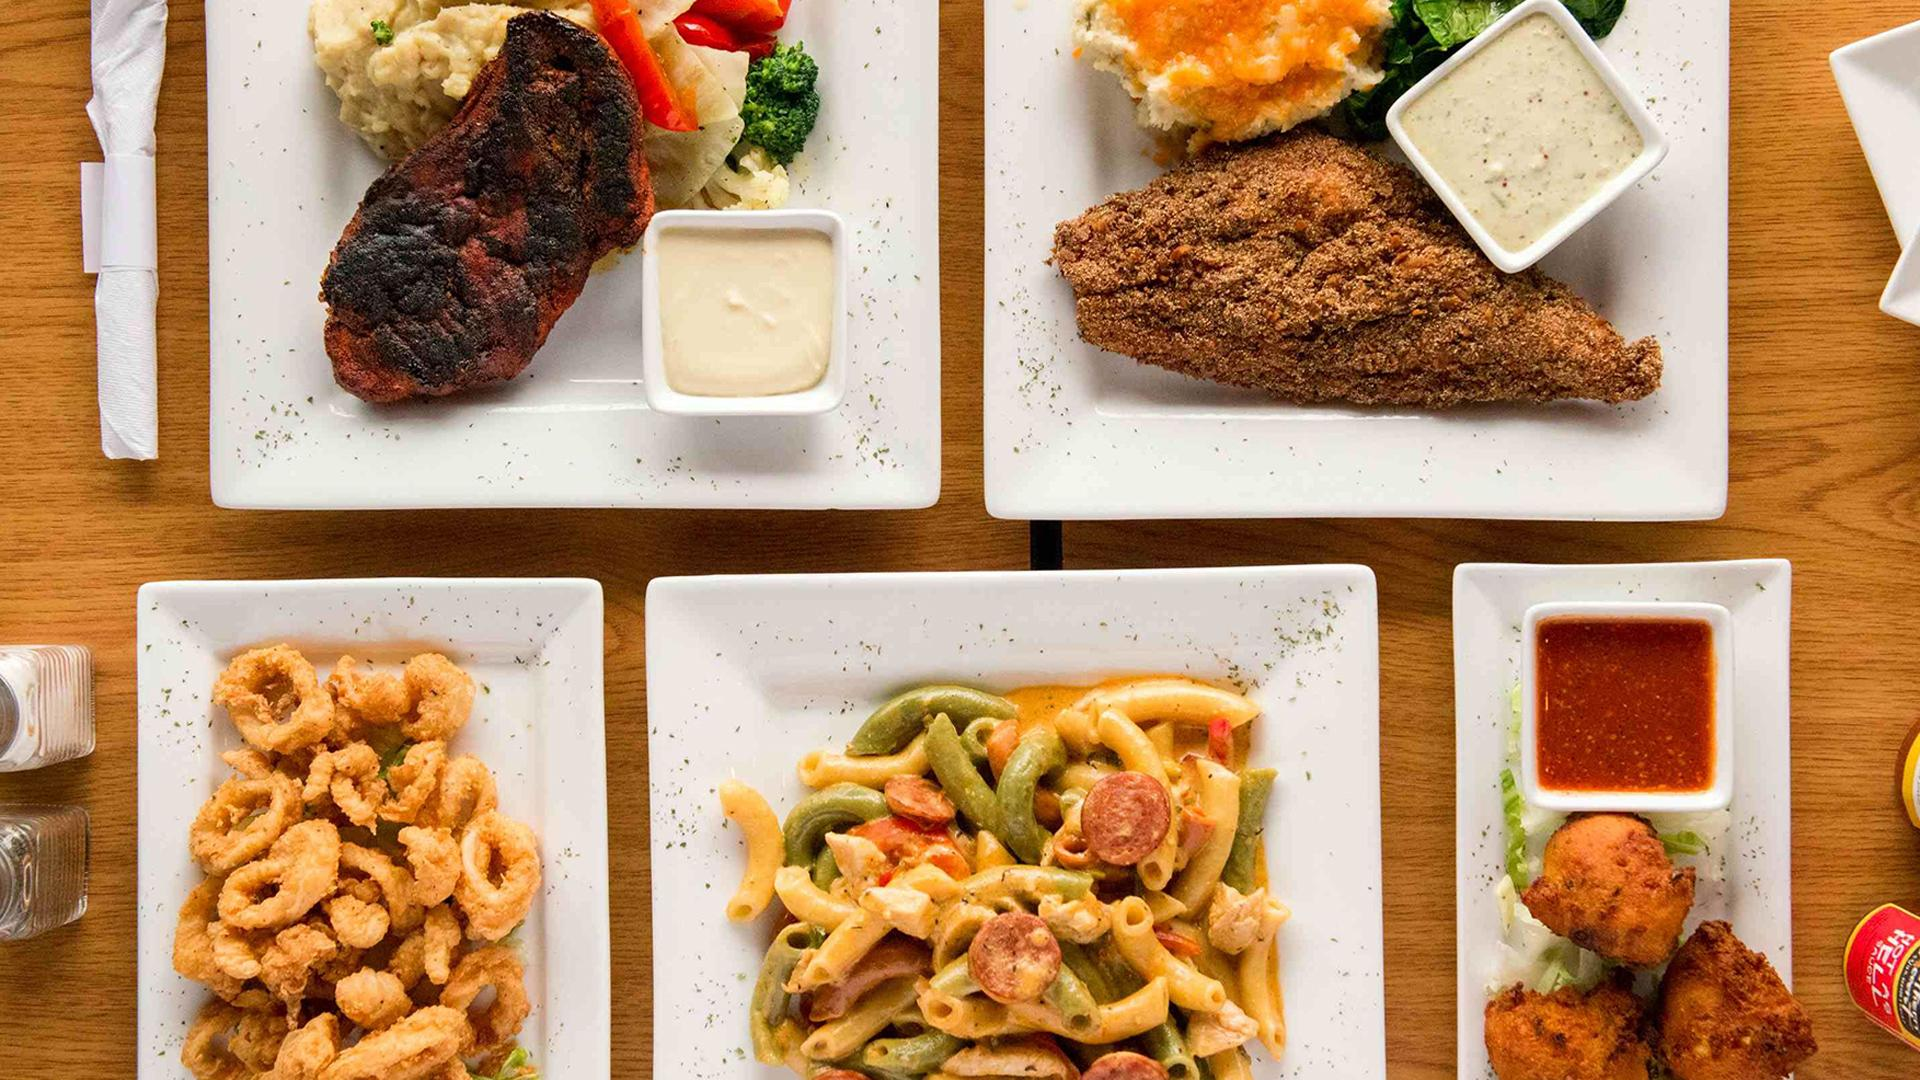 Best Southern soul food restaurants Toronto | Dishes from Upper Beaches Bourbon House